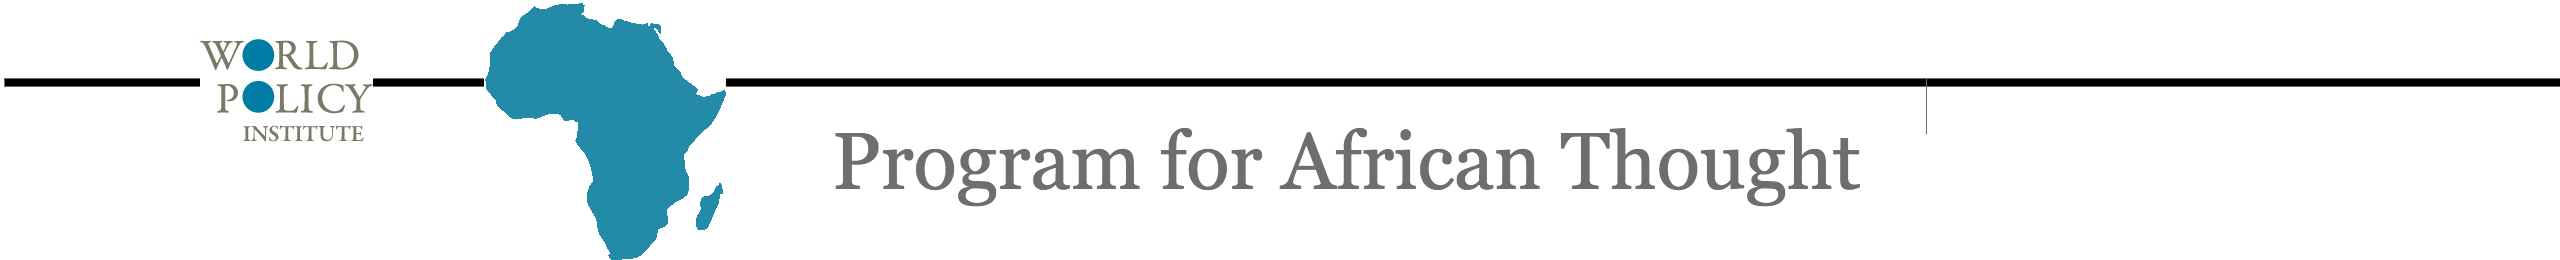 Program for African Thought